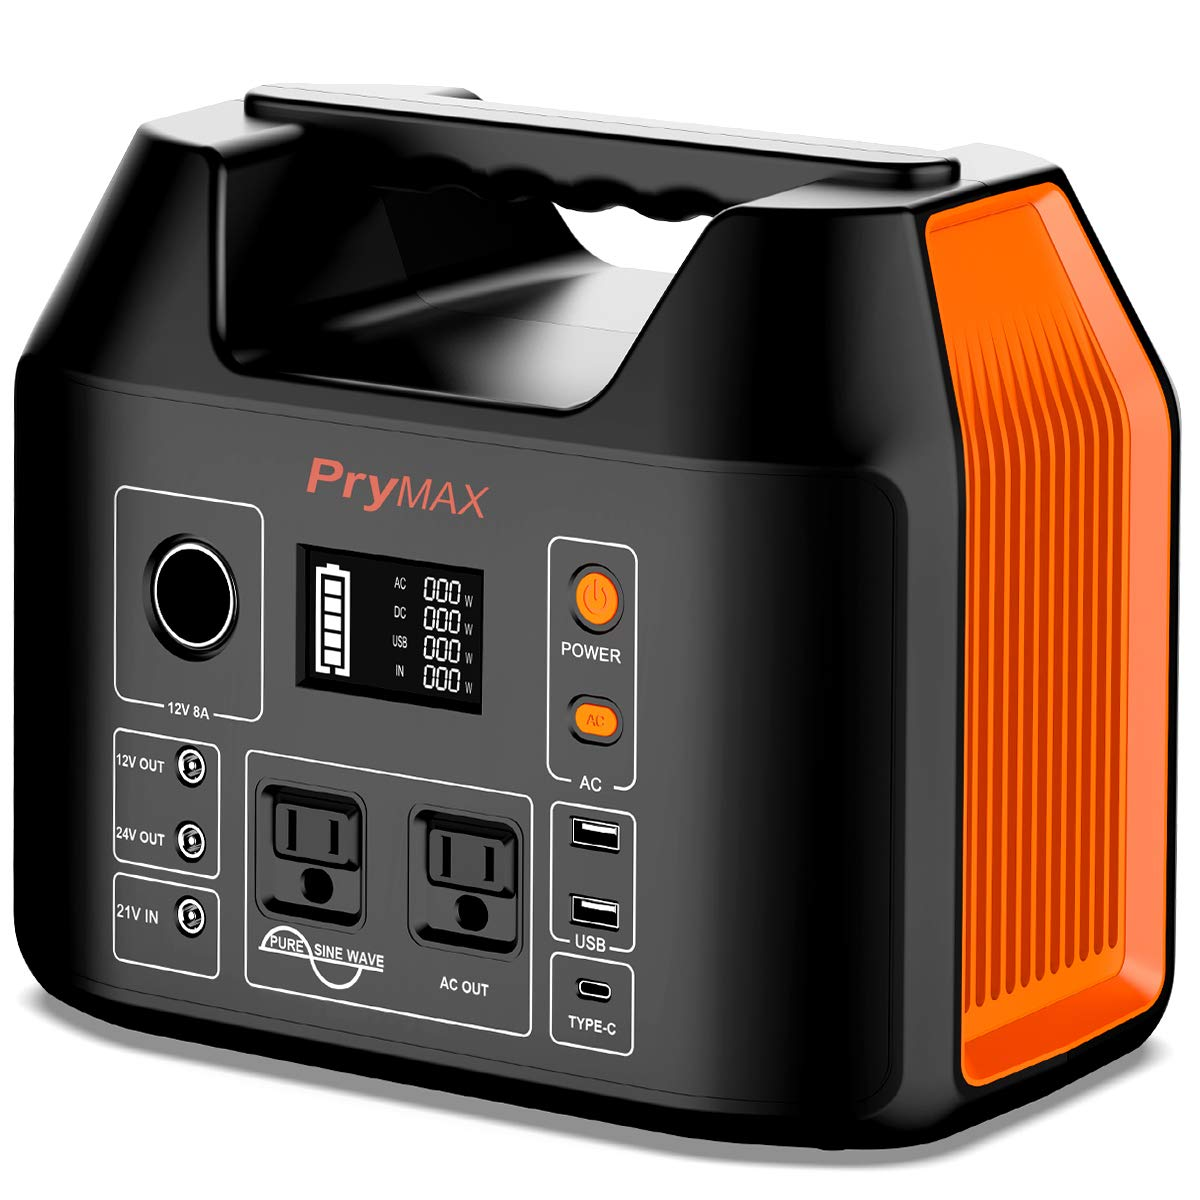 PRYMAX Portable Power Station, 555Wh Solar Generator 500W CPAP Backup Lithium Battery Pack with LED Flashlight,110V 500W Pure Sine Wave,AC Outlet, QC3.0 USB,for Outdoors Camping Travel RV Power Outage